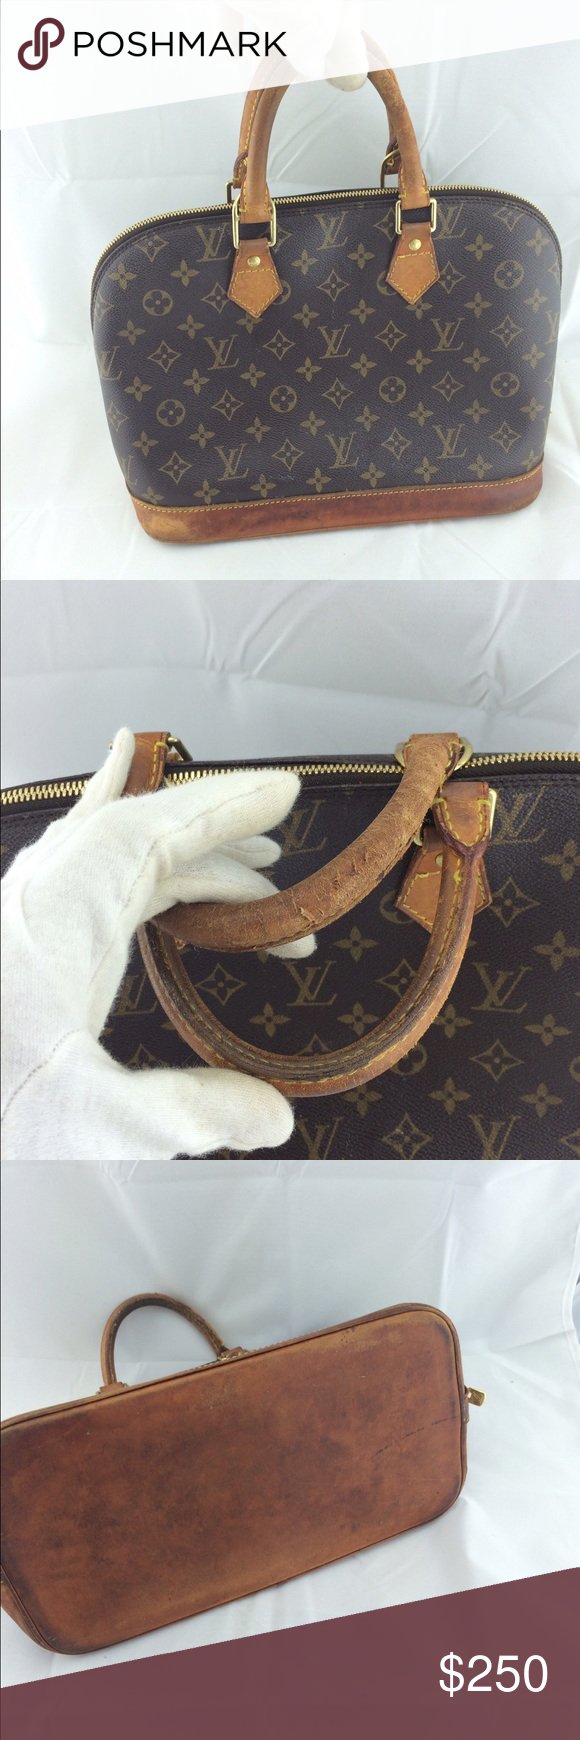 Authentic Louis Vuitton alma monogram Vintage .wear on leather handles and bottom .100% authentic Louis Vuitton Bags Totes